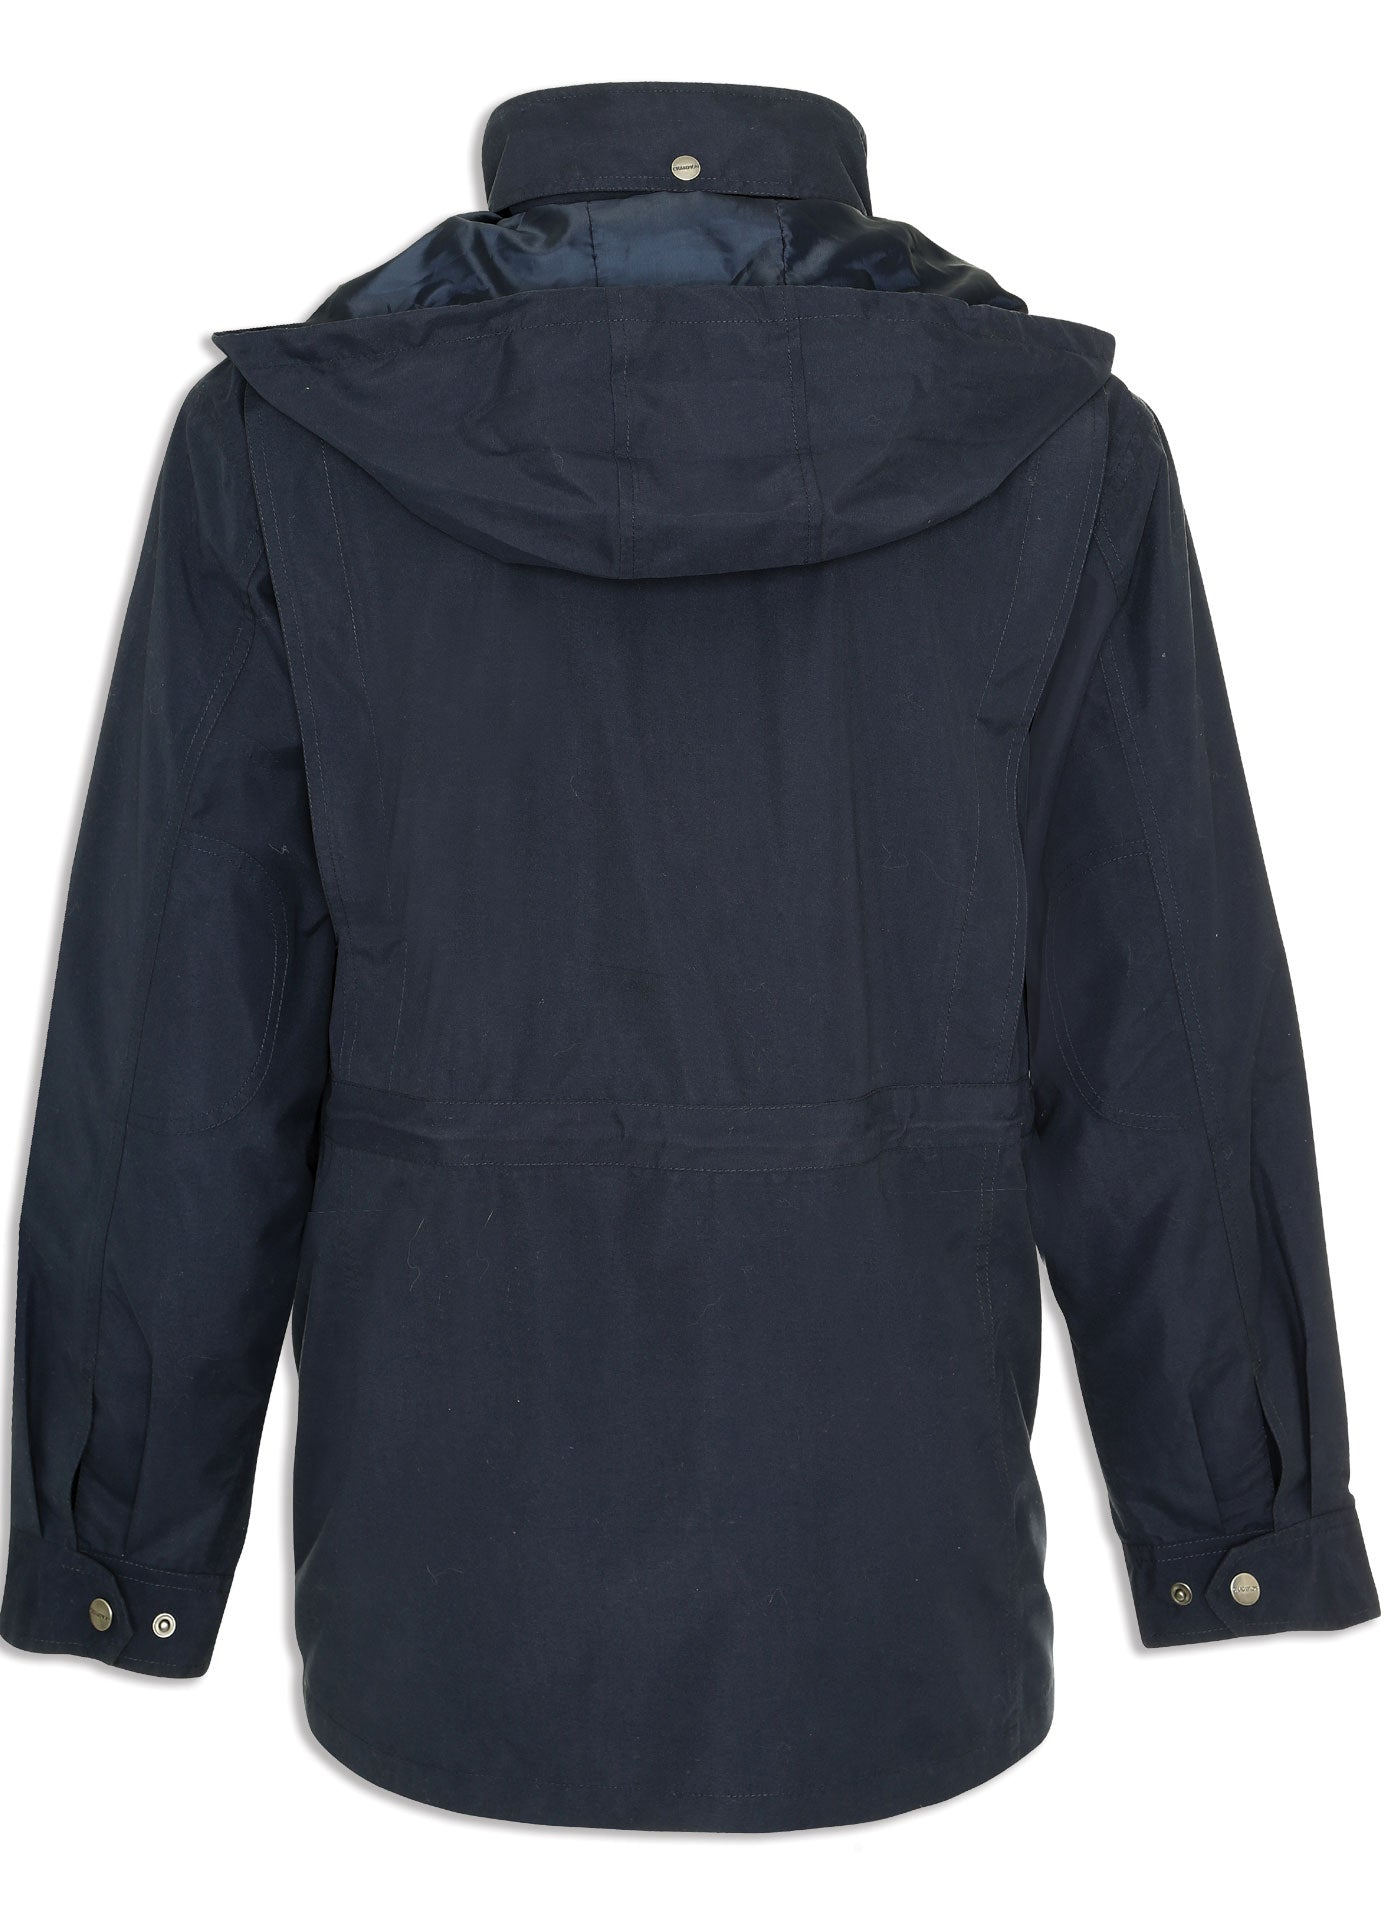 the back view of the Pevensey Travel jacket in Navy